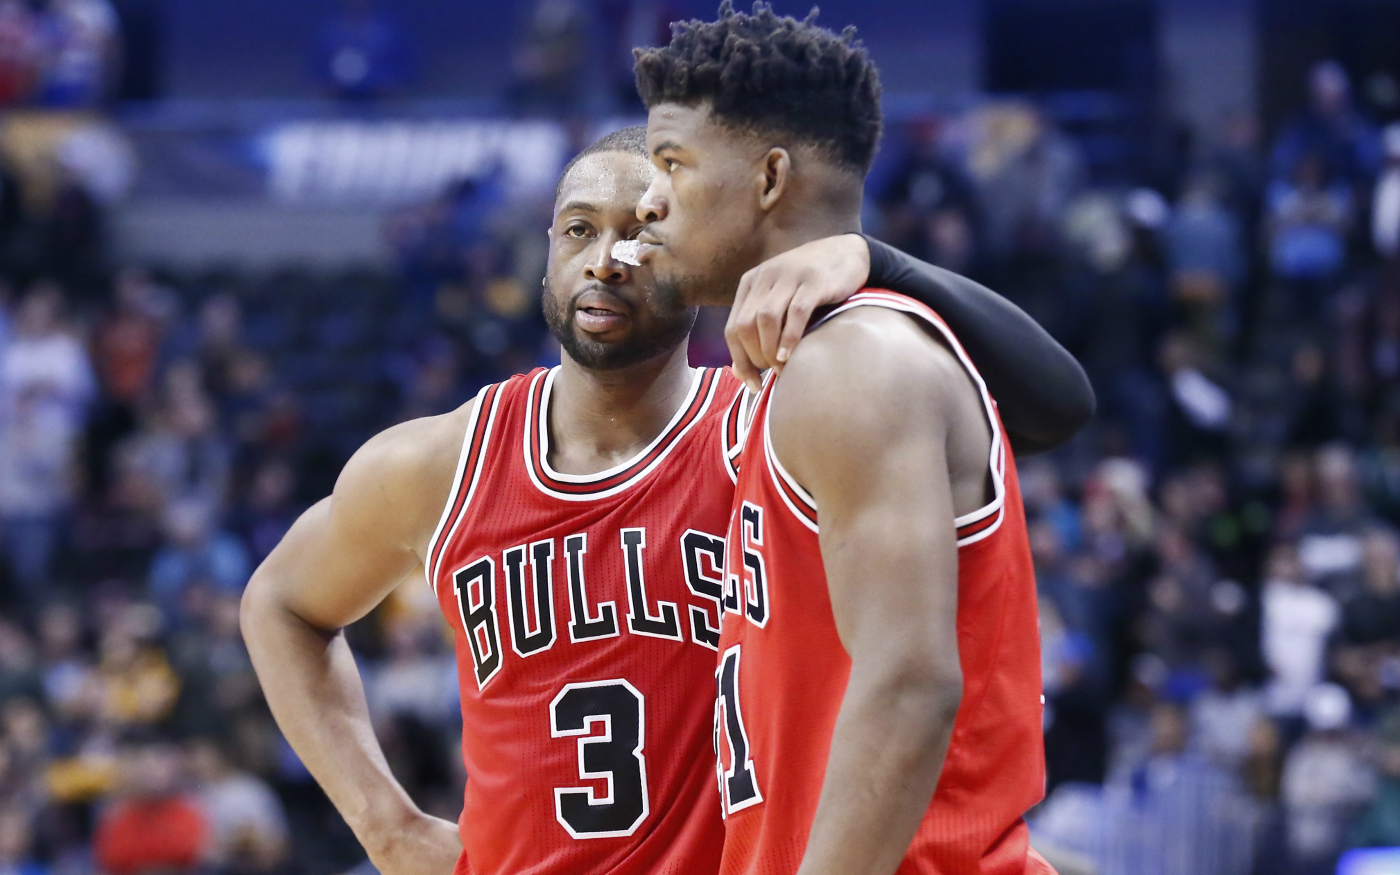 Dwyane Wade compare la défense de Jimmy Butler à celle de LeBron James